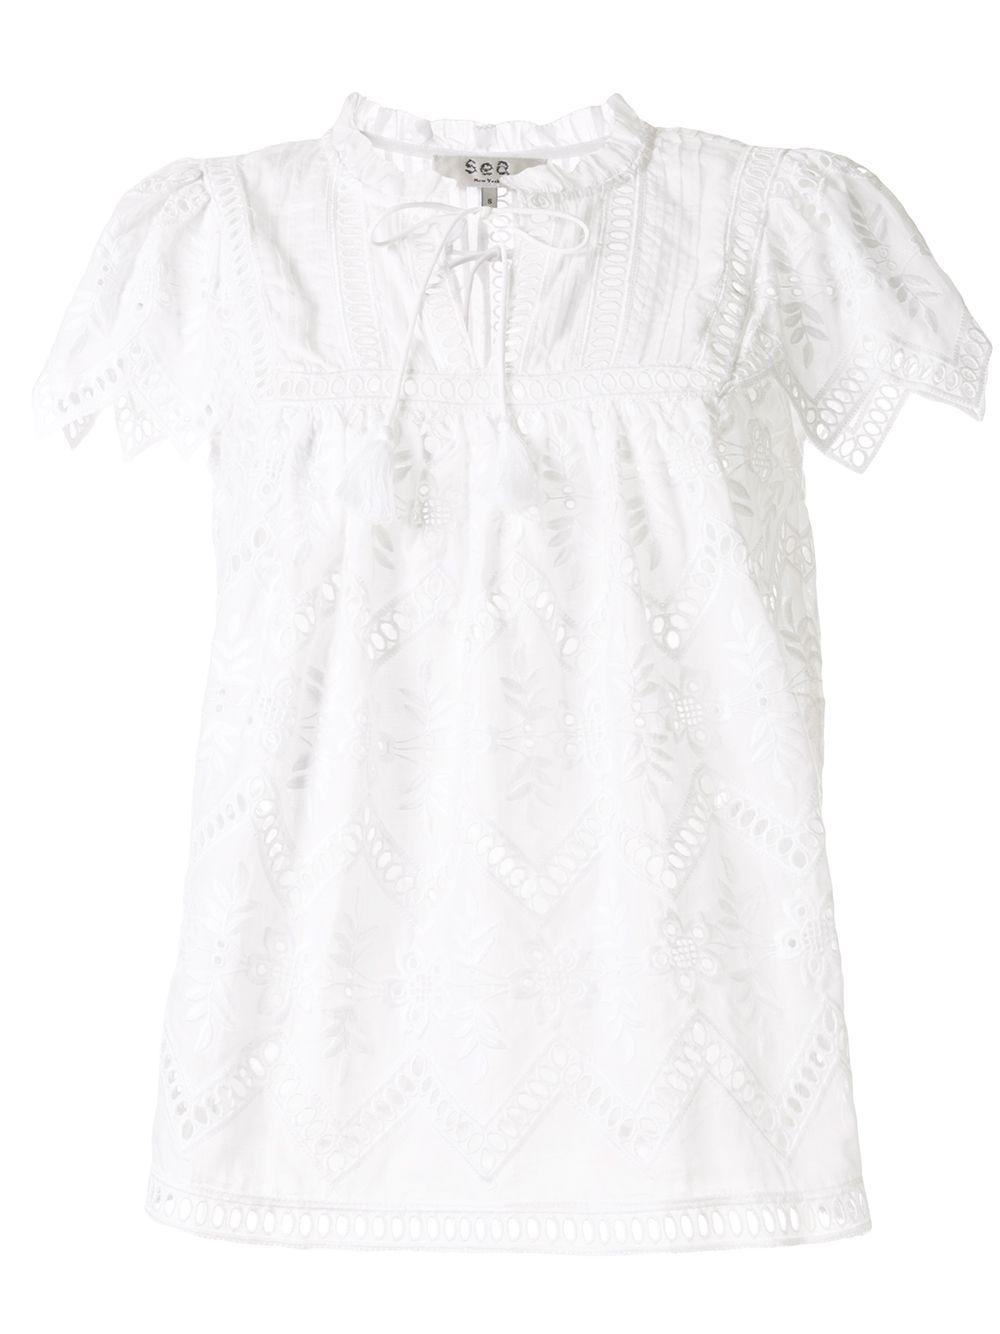 Zippy Eyelet Short Sleeve Top